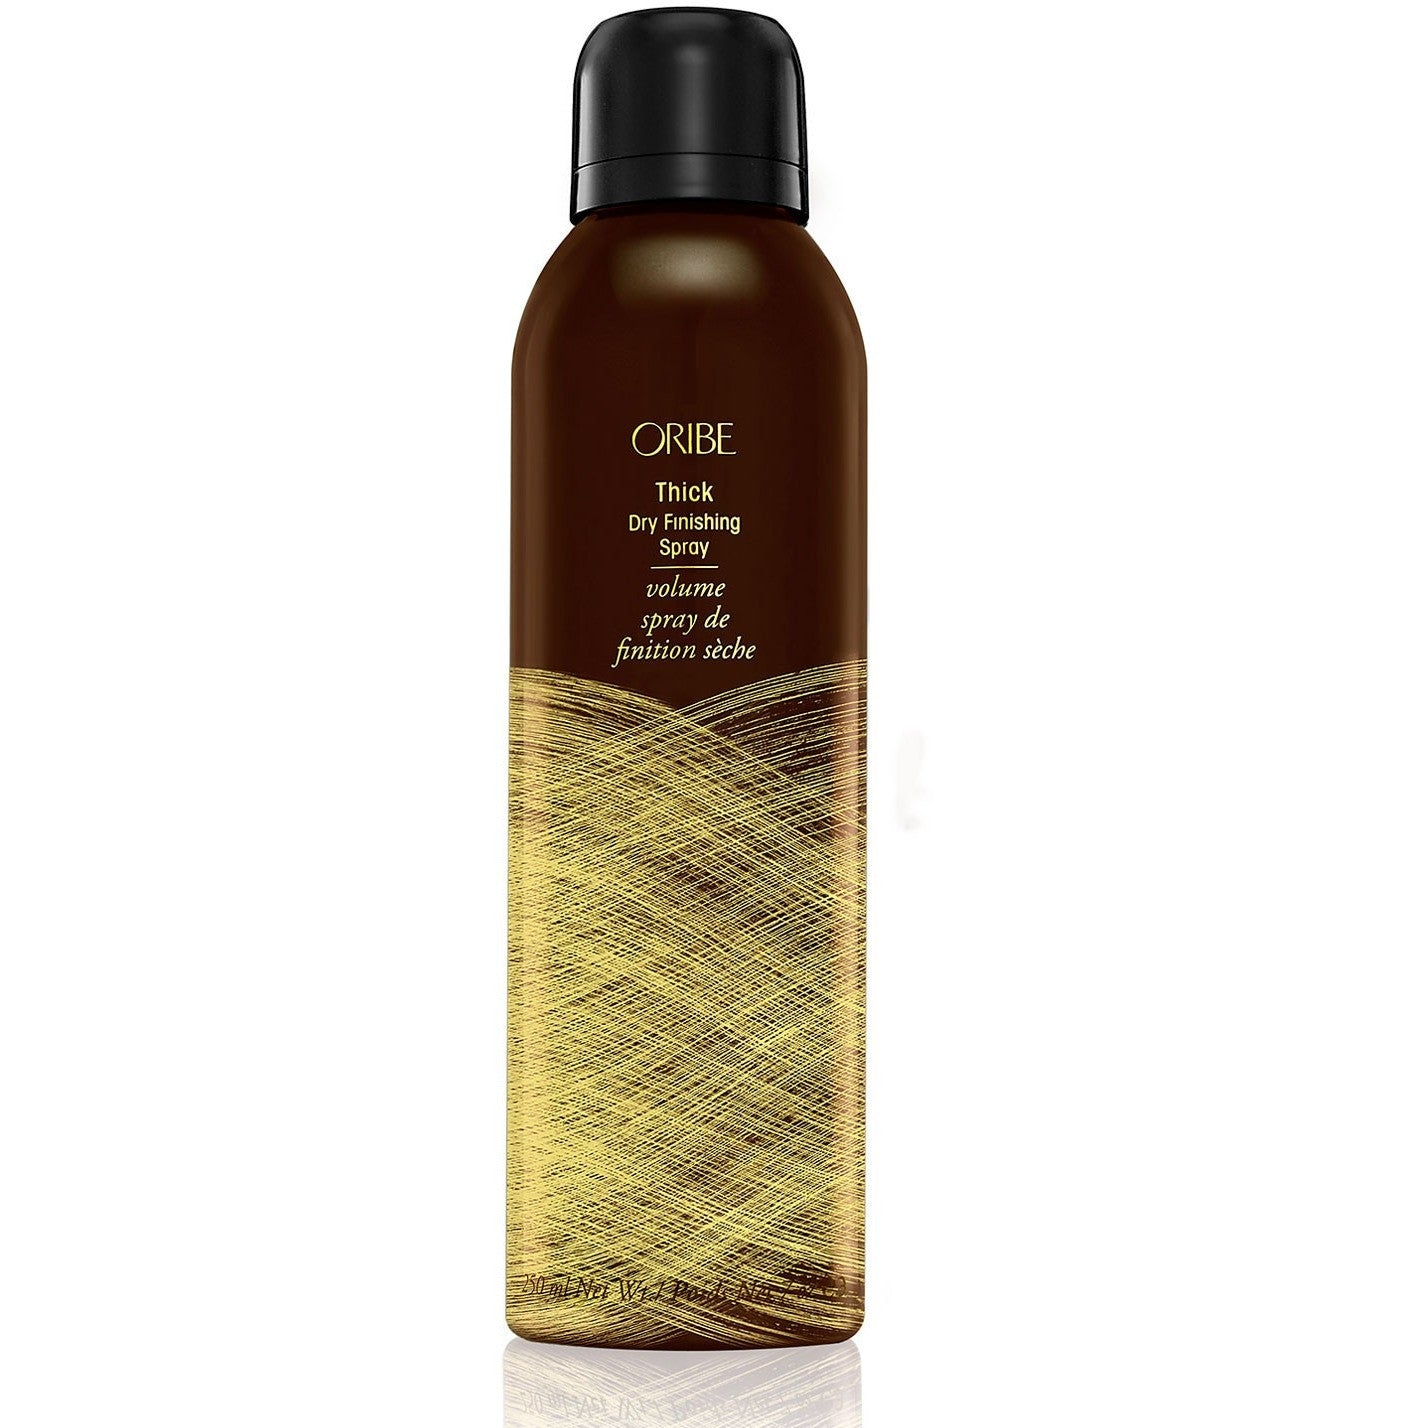 oribe - thick dry finishing spray[product_type ]oribe - Kiss and Makeup